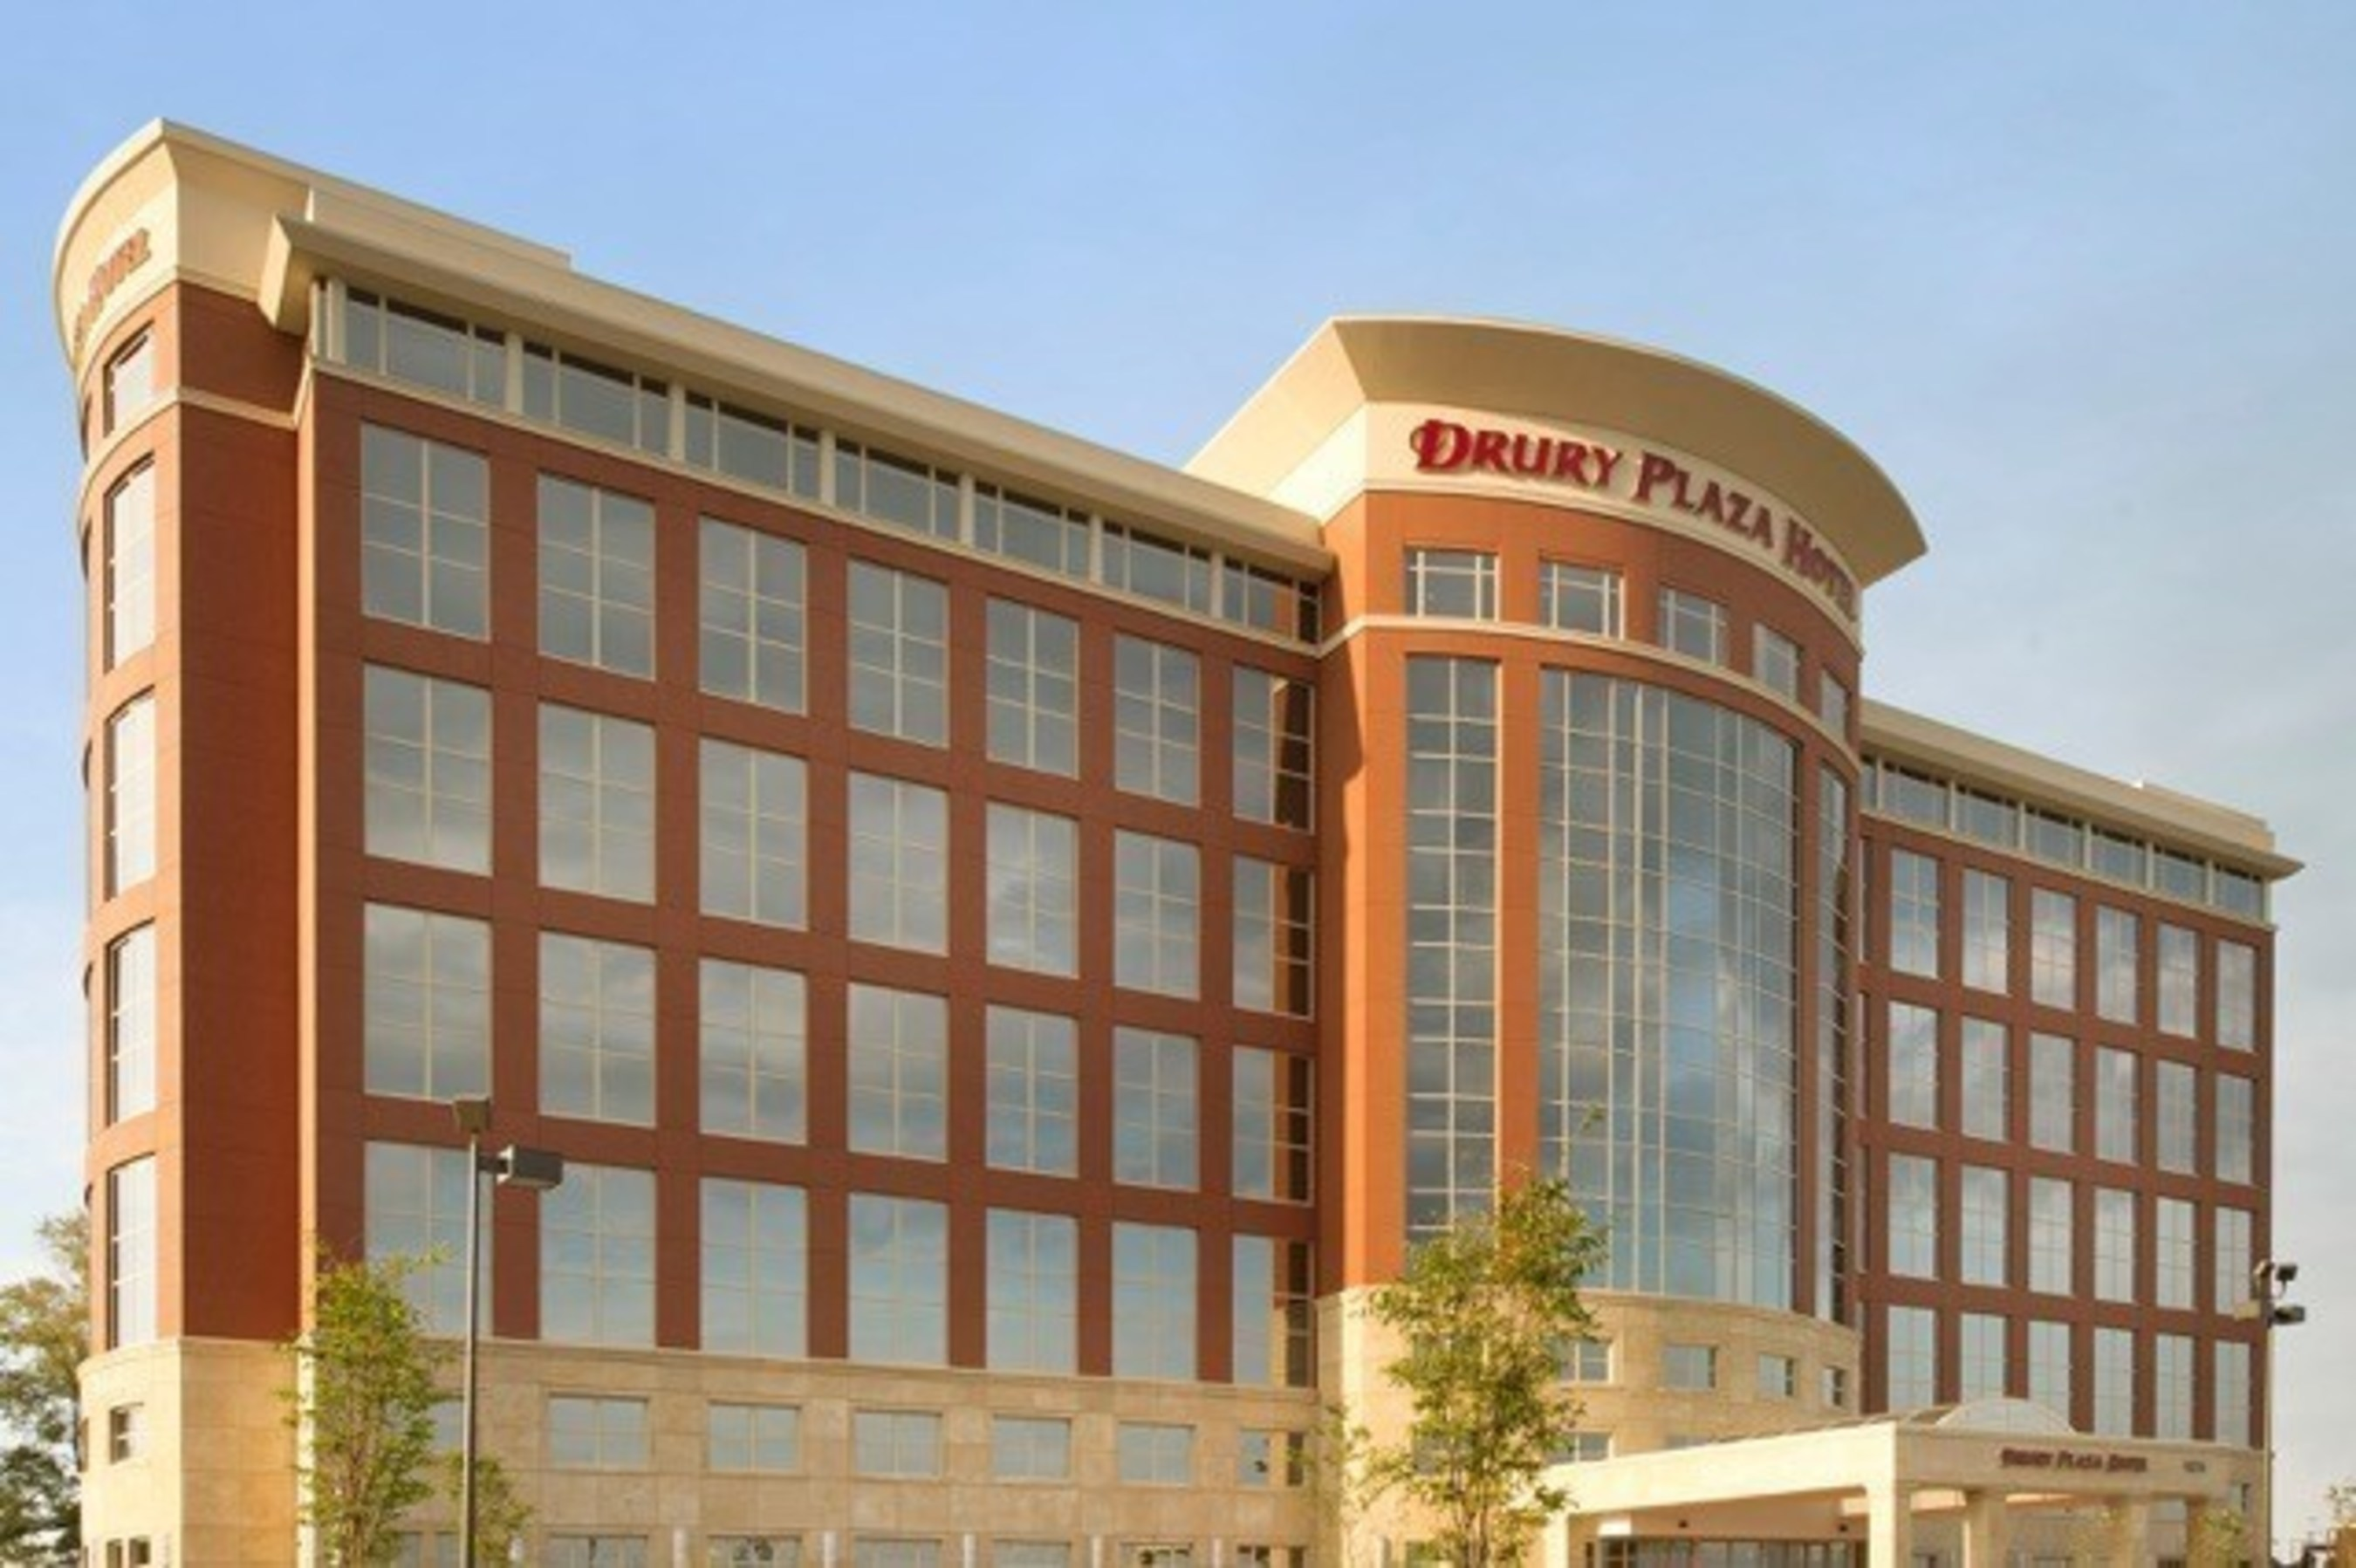 The Drury Plaza Hotel Indianapolis Carmel, located at 9625 North Meridian Street. The property features 303 guest rooms and seven meeting rooms totaling more than 7,000 square feet of flexible event space.